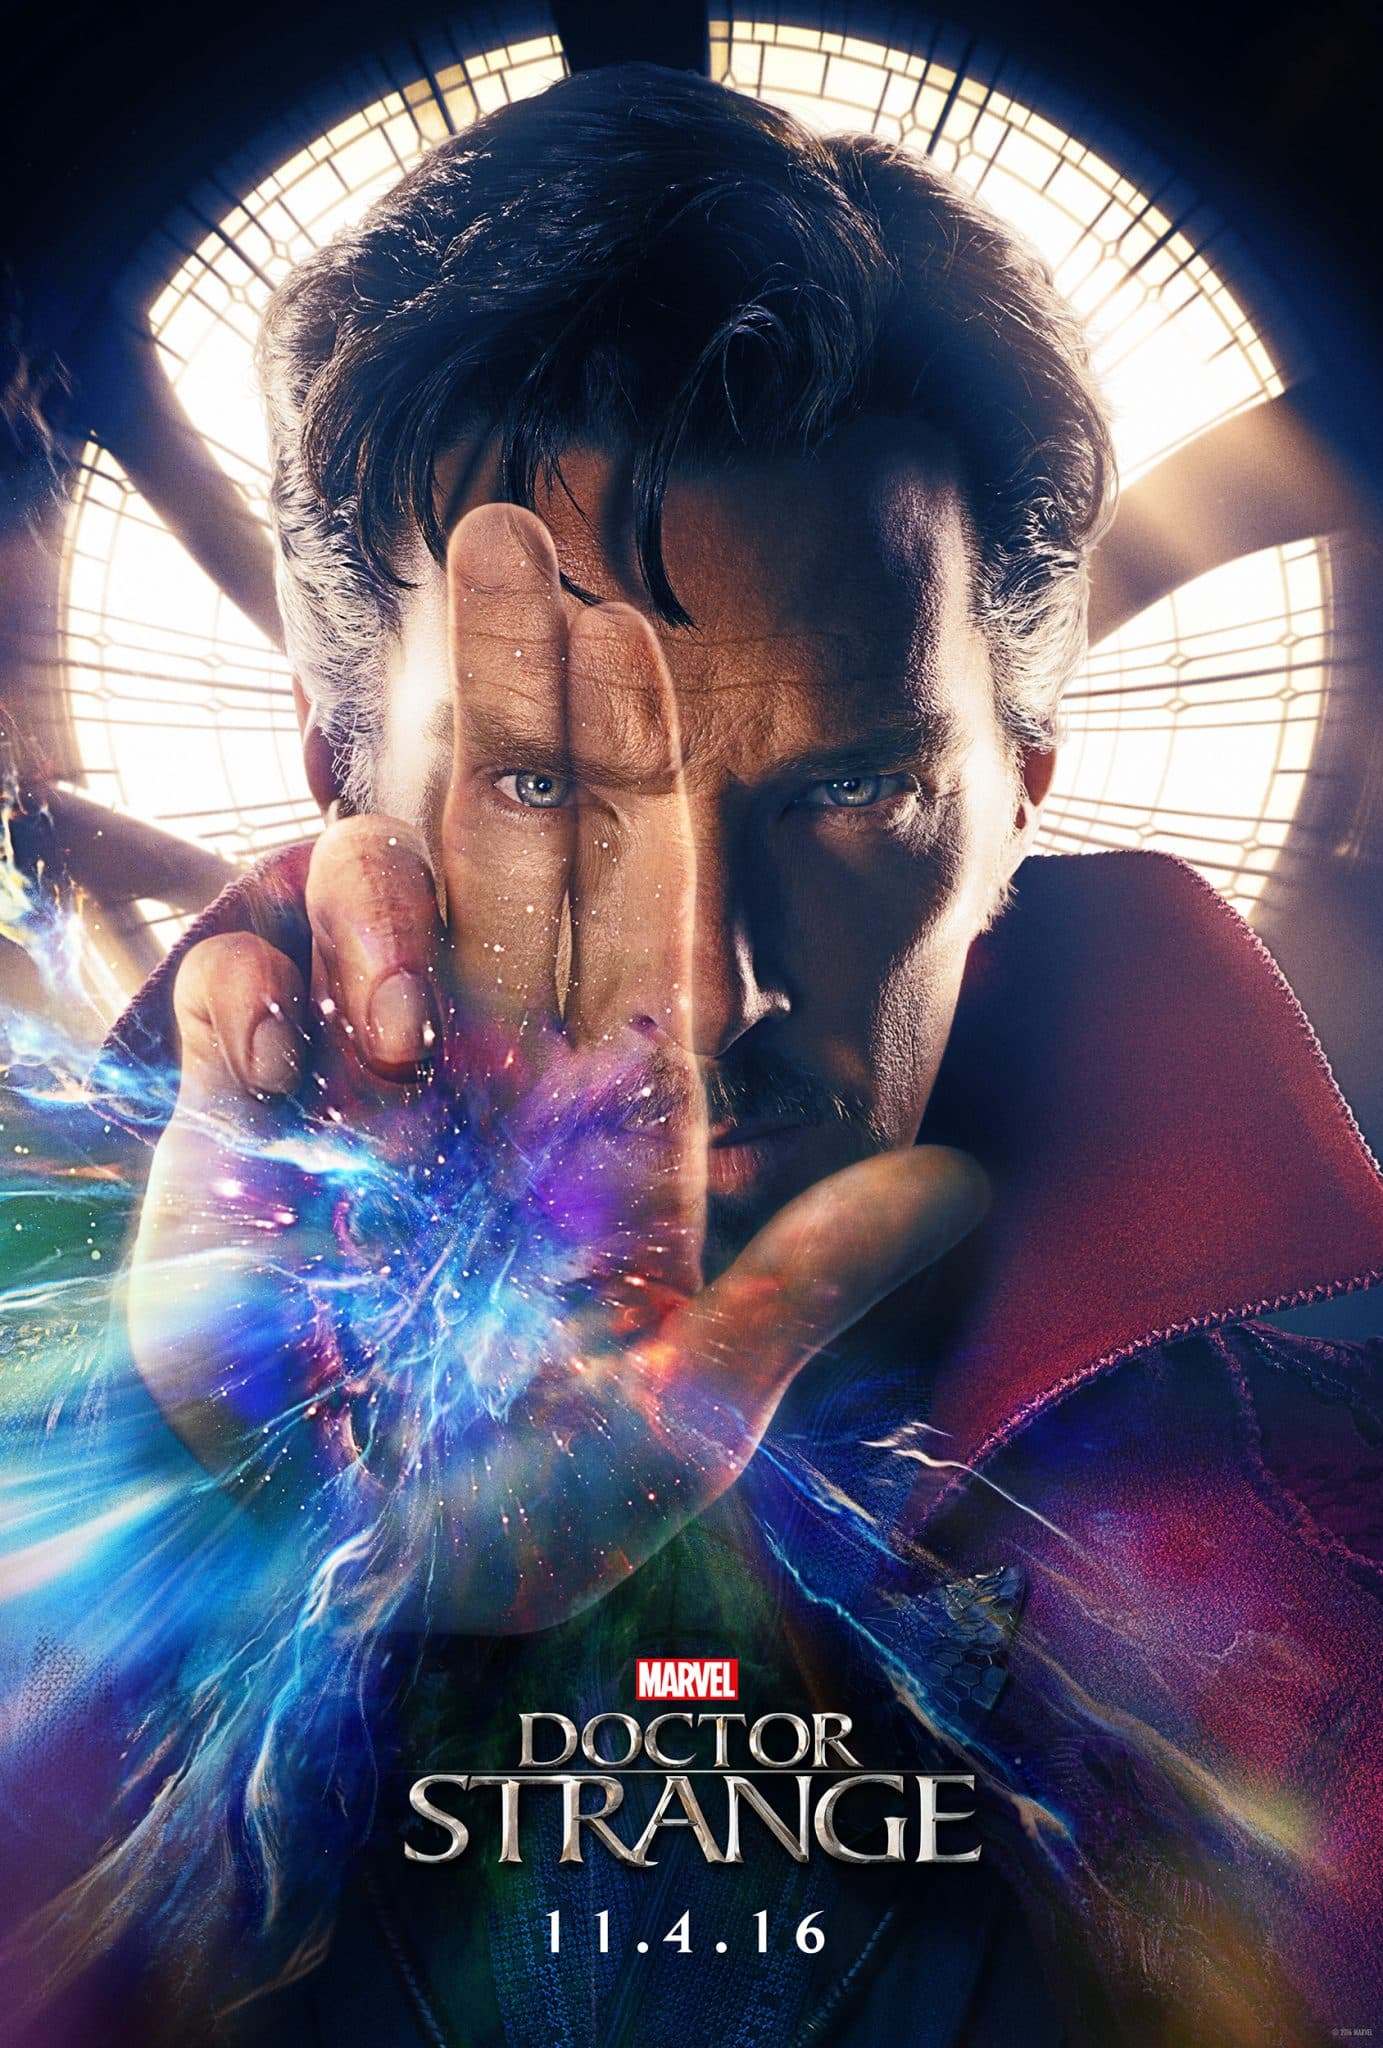 Doctor Strange In Theaters 11/4